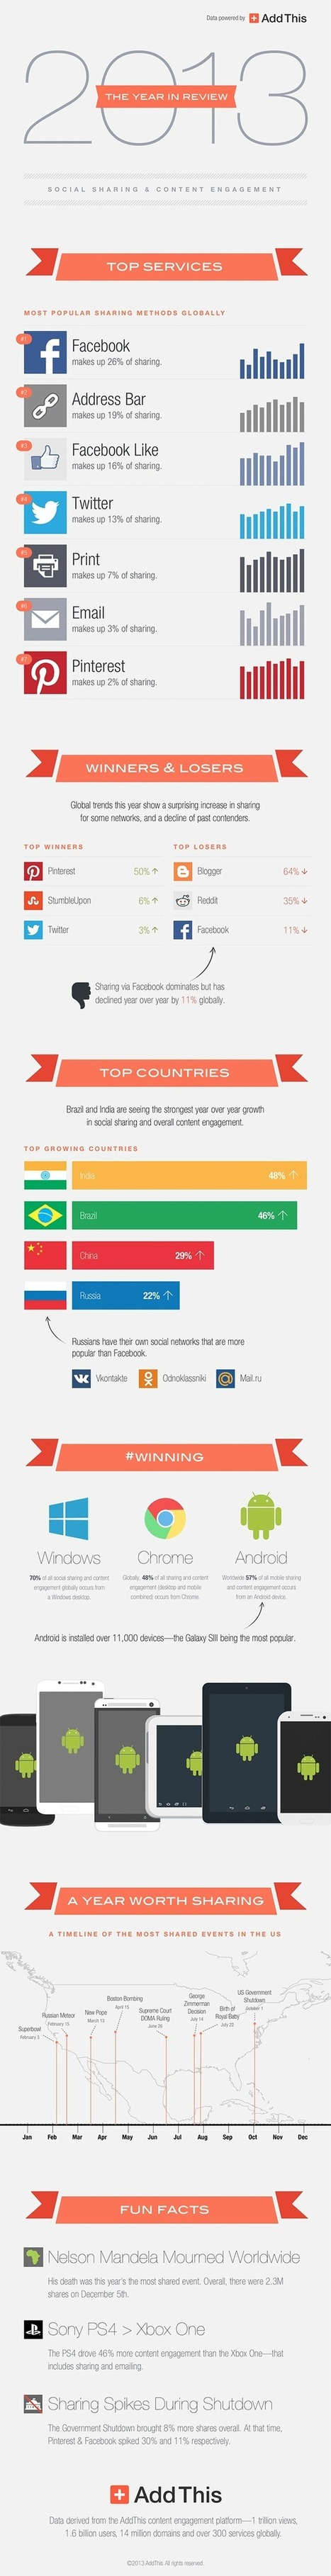 Social Sharing Stats 2013: Twitter Up, Facebook Down, Android Over iPhone [INFOGRAPHIC] - AllTwitter | Better know and better use Social Media today (facebook, twitter...) | Scoop.it